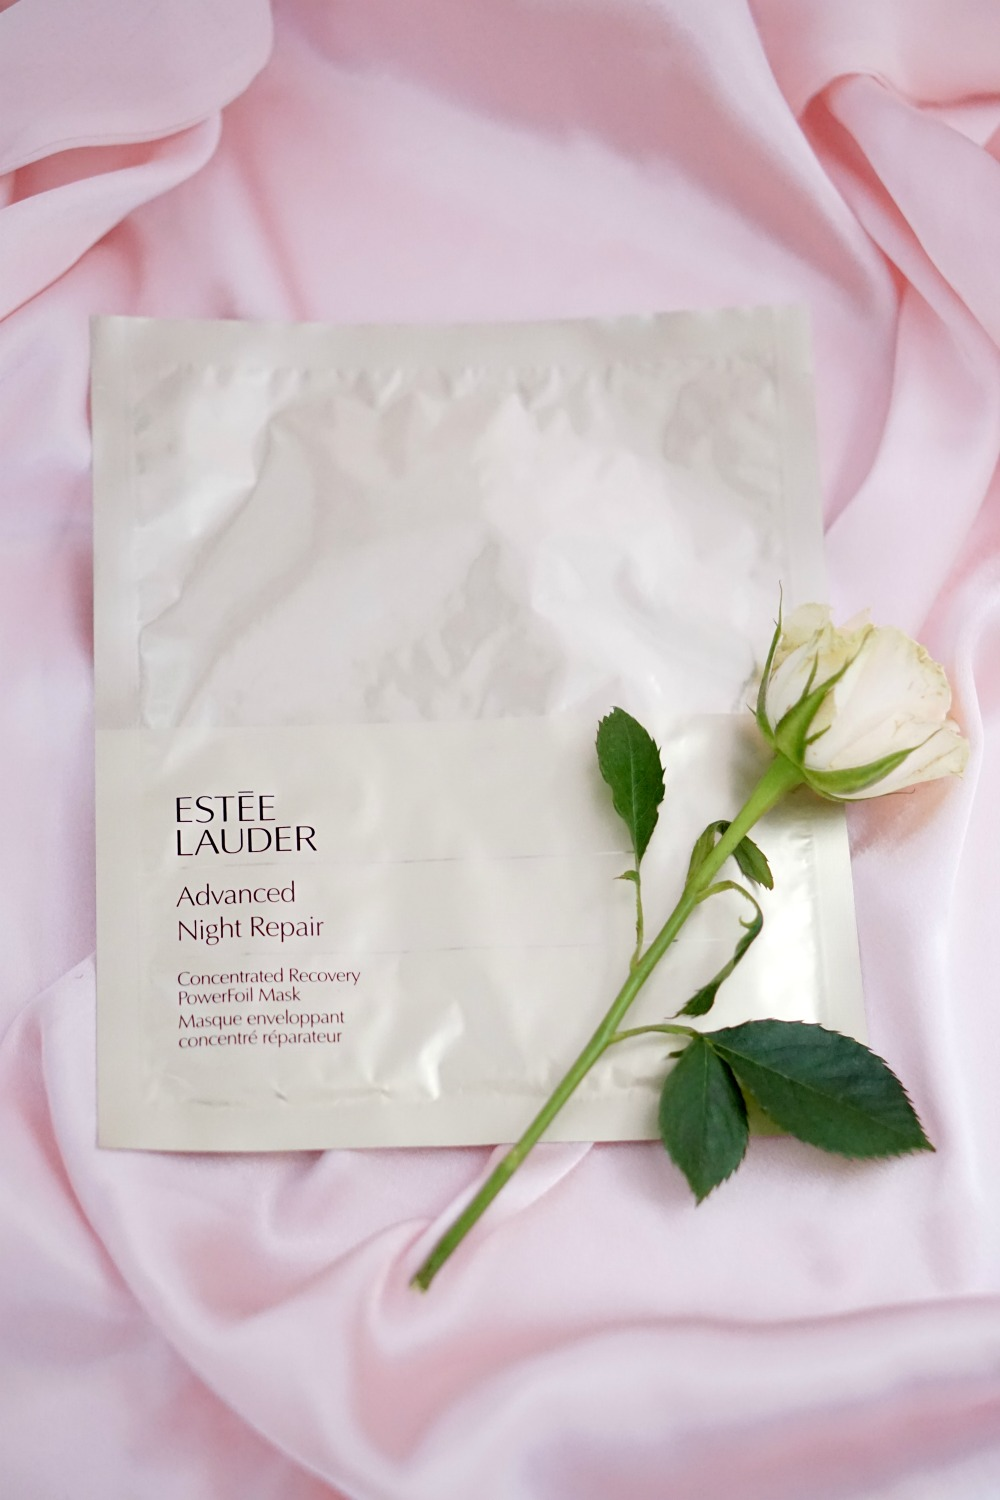 Estee Lauder Advanced Night Repair Mask review